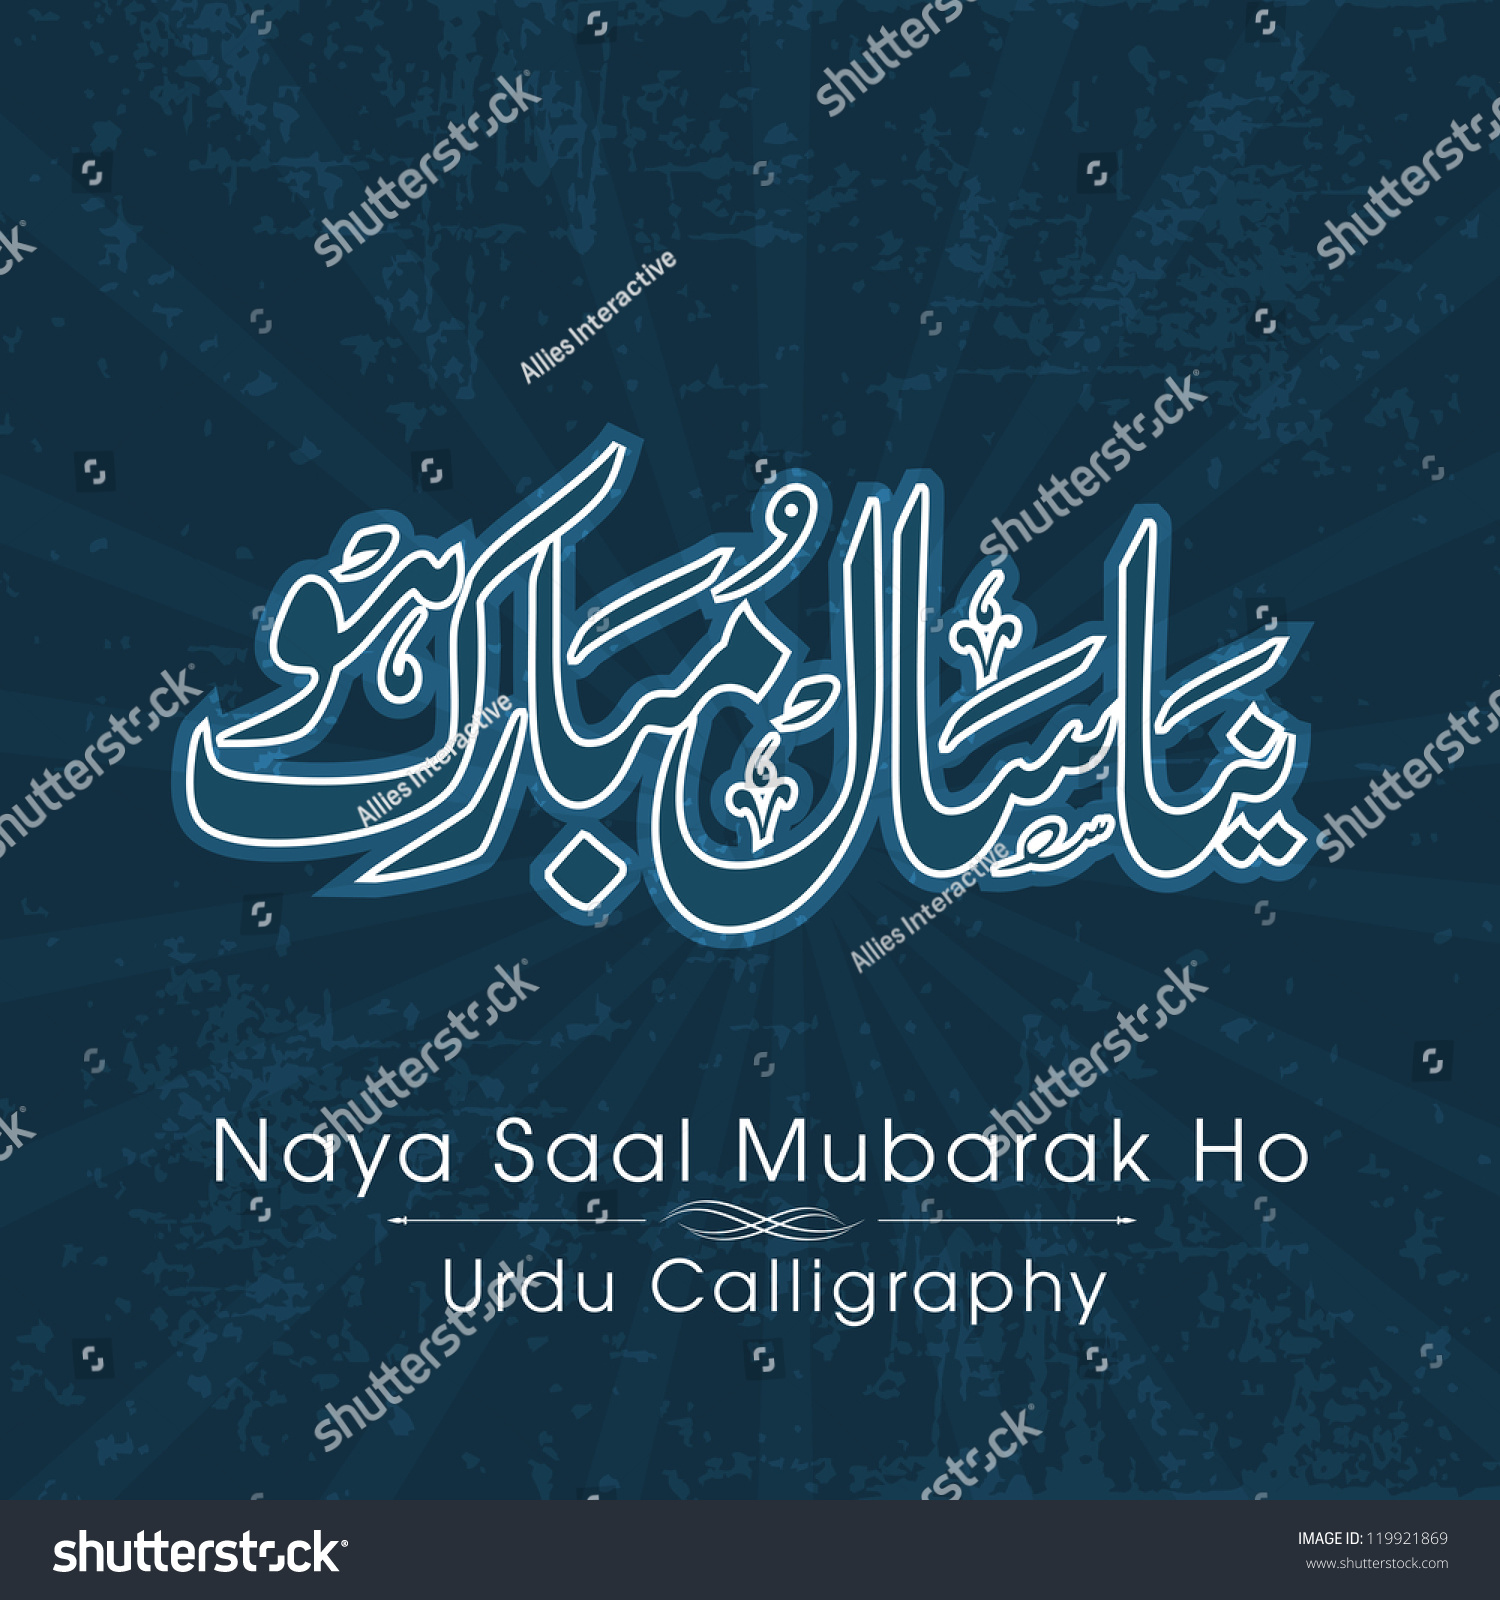 Urdu Calligraphy Font Free Download Royalty Free Urdu Calligraphy Of Naya Saal Mubarak 119921869